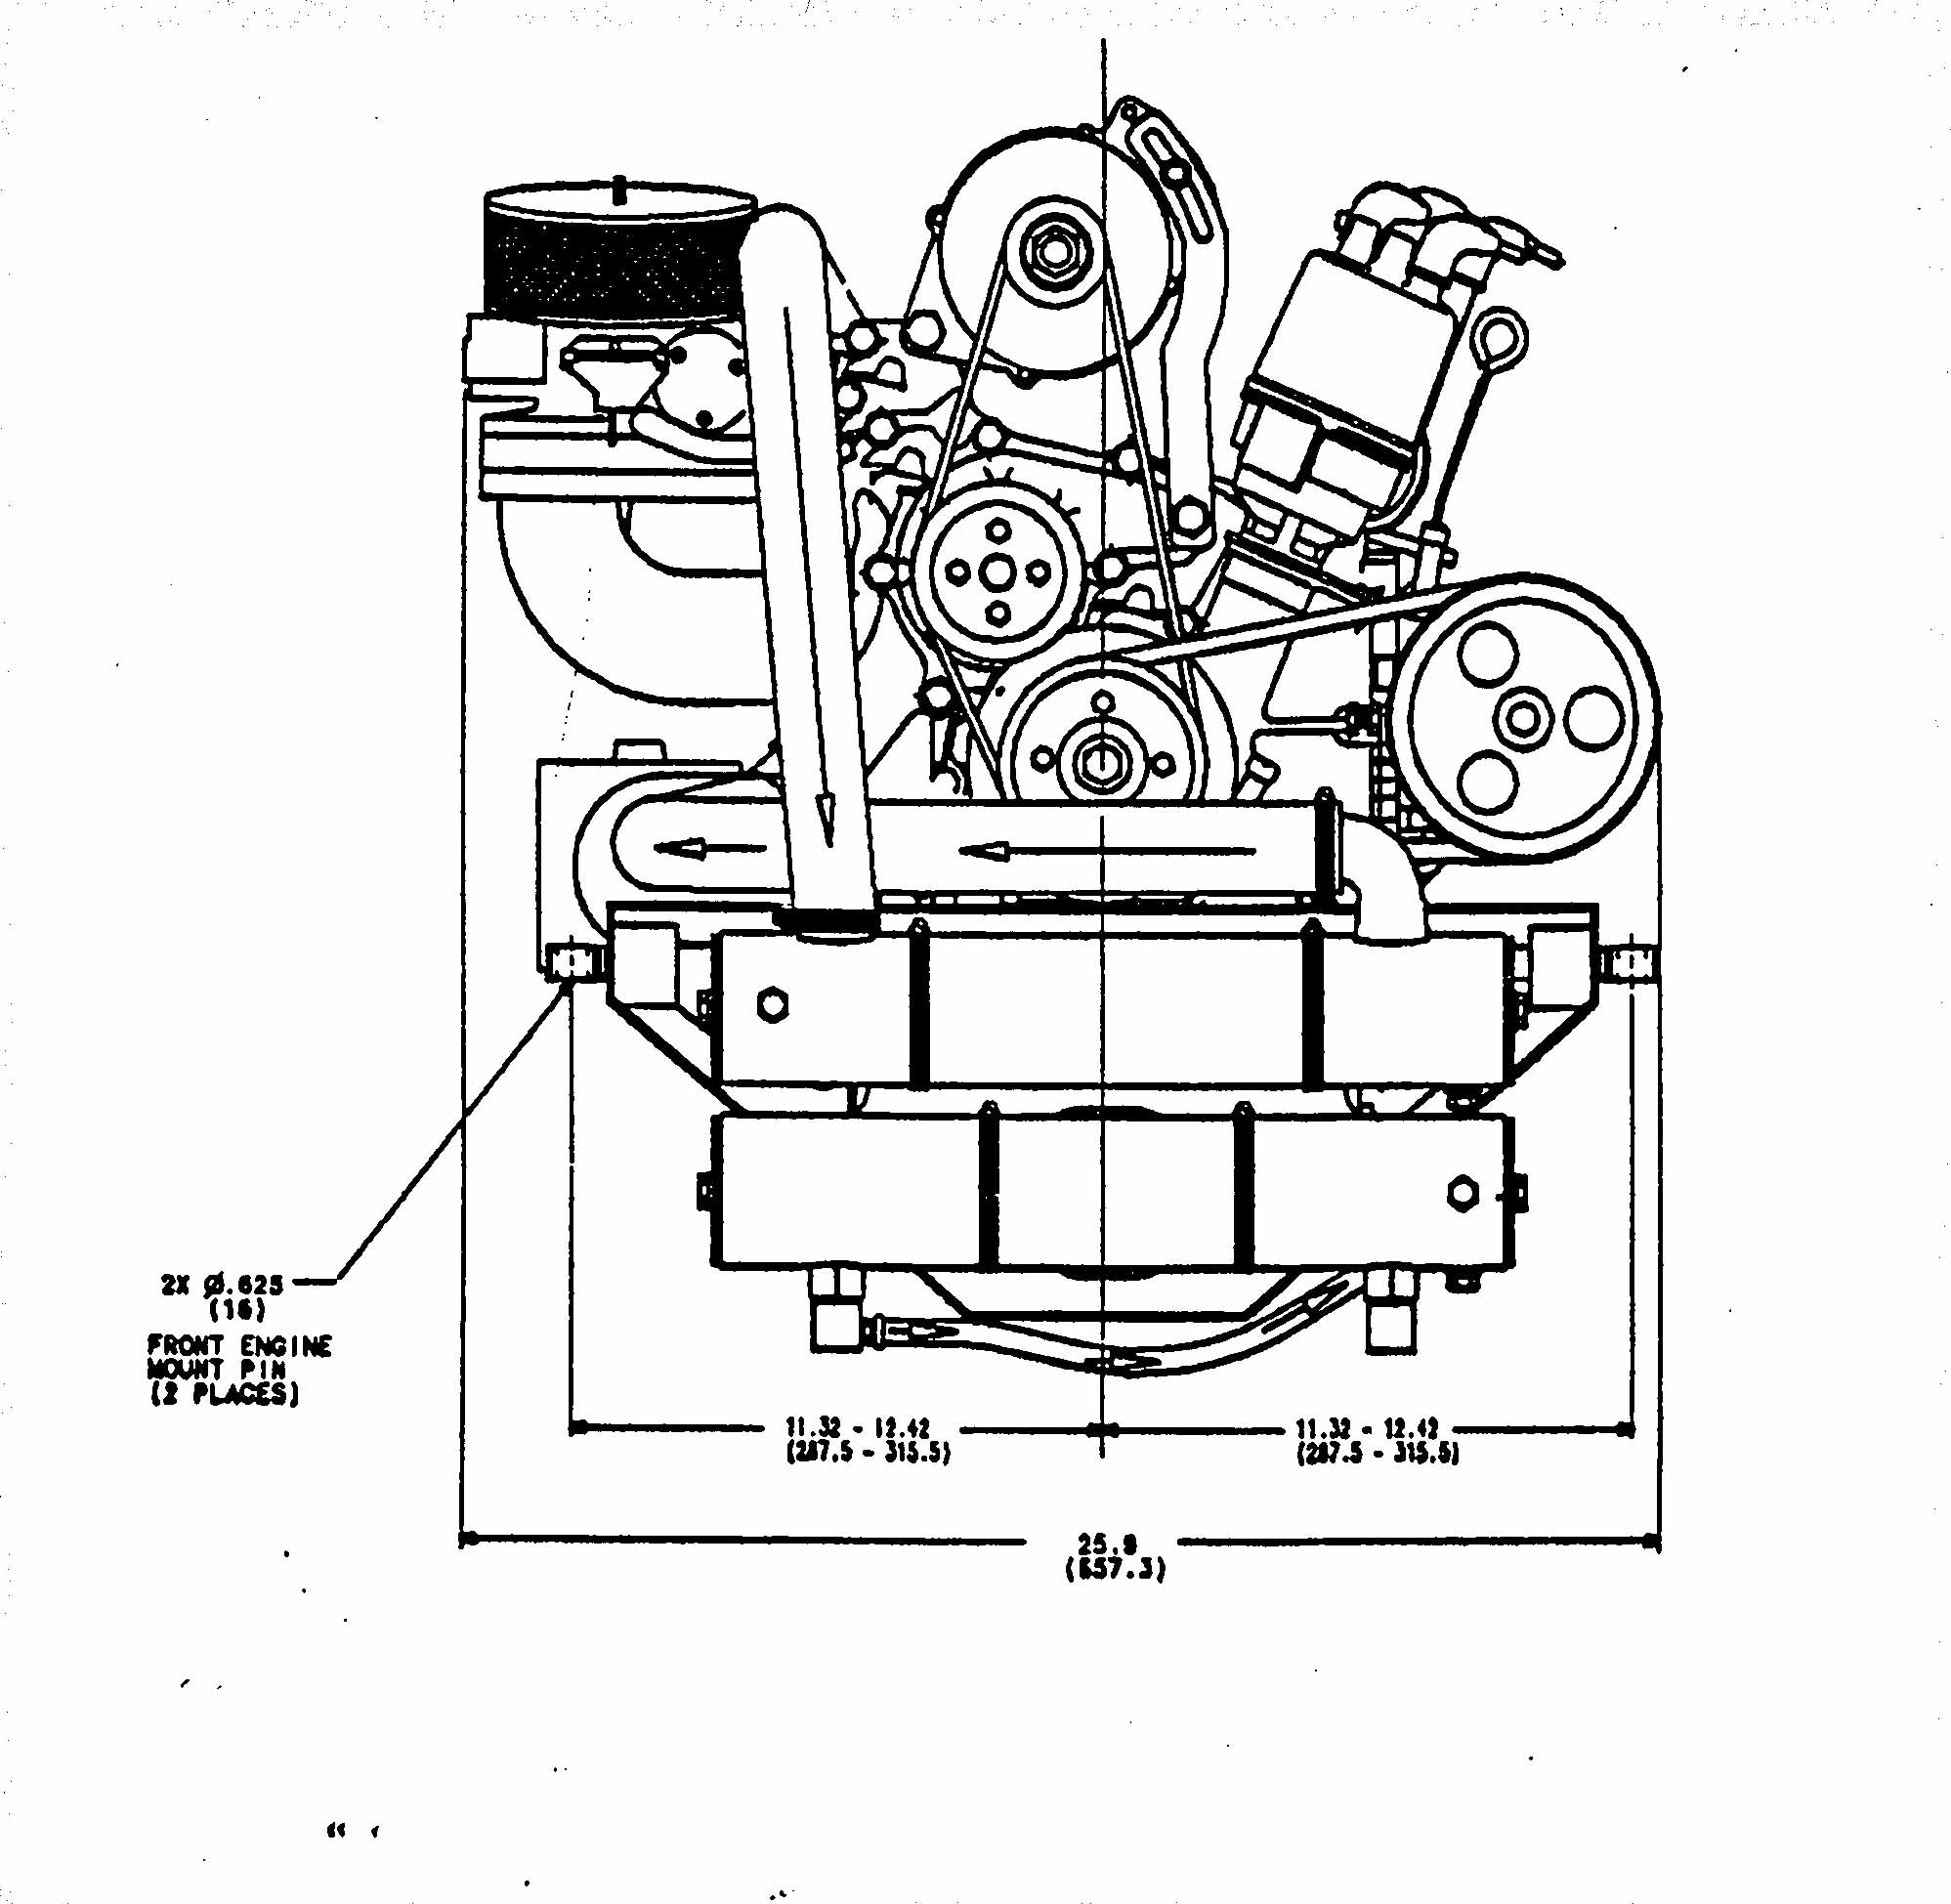 Wrg 13b Rotary Engine Diagram